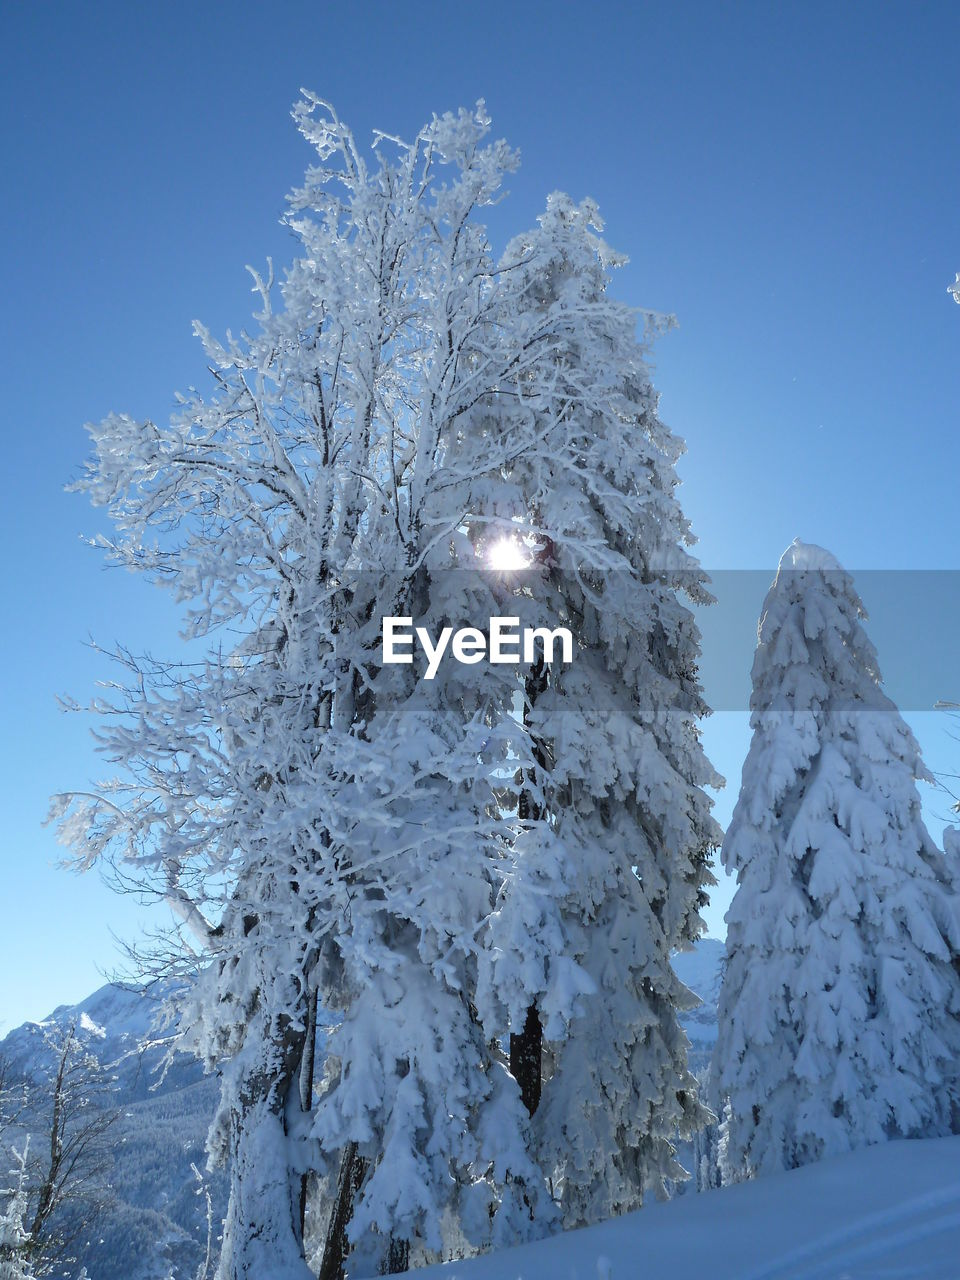 LOW ANGLE VIEW OF SNOW COVERED TREE AGAINST BLUE SKY